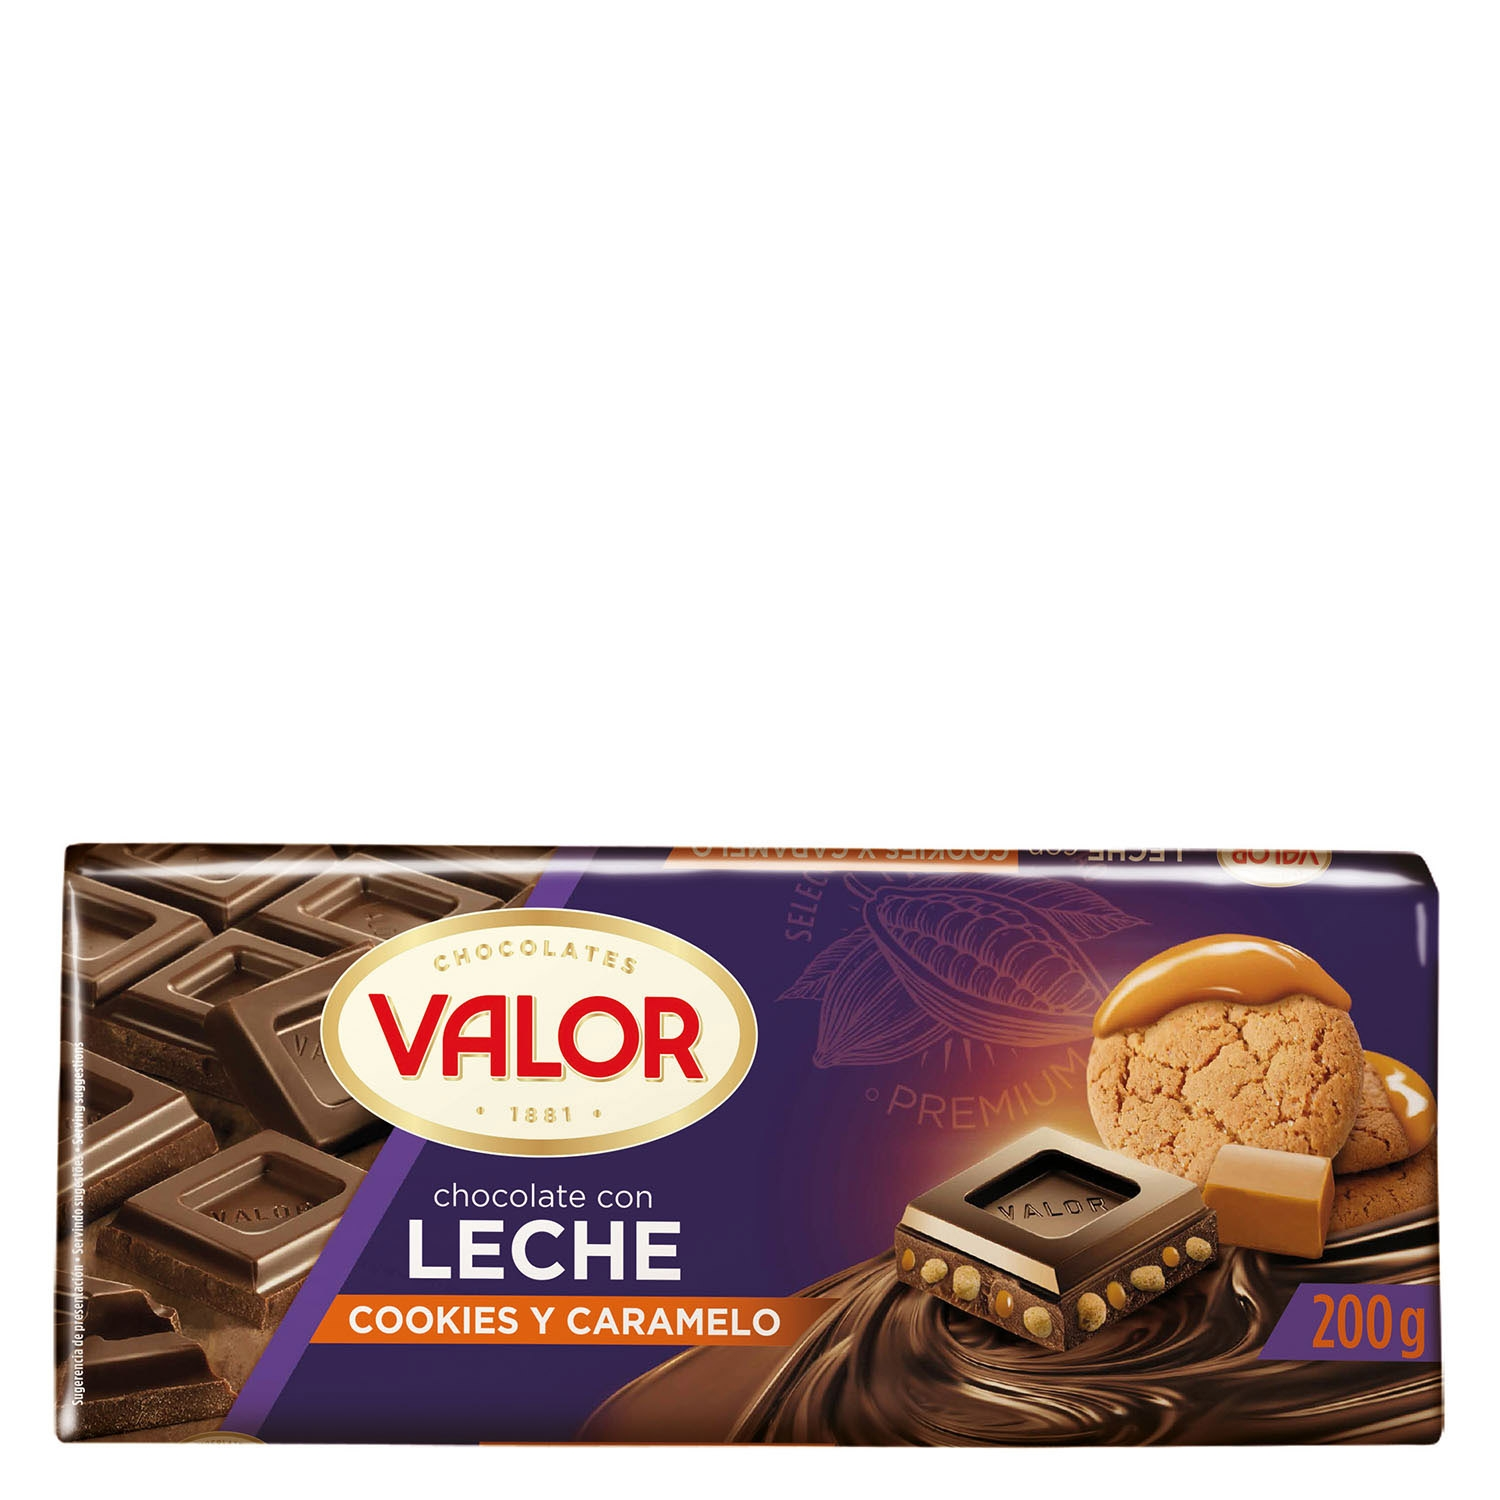 Chocolate con leche, cookies y caramelo Valor - Carrefour ...